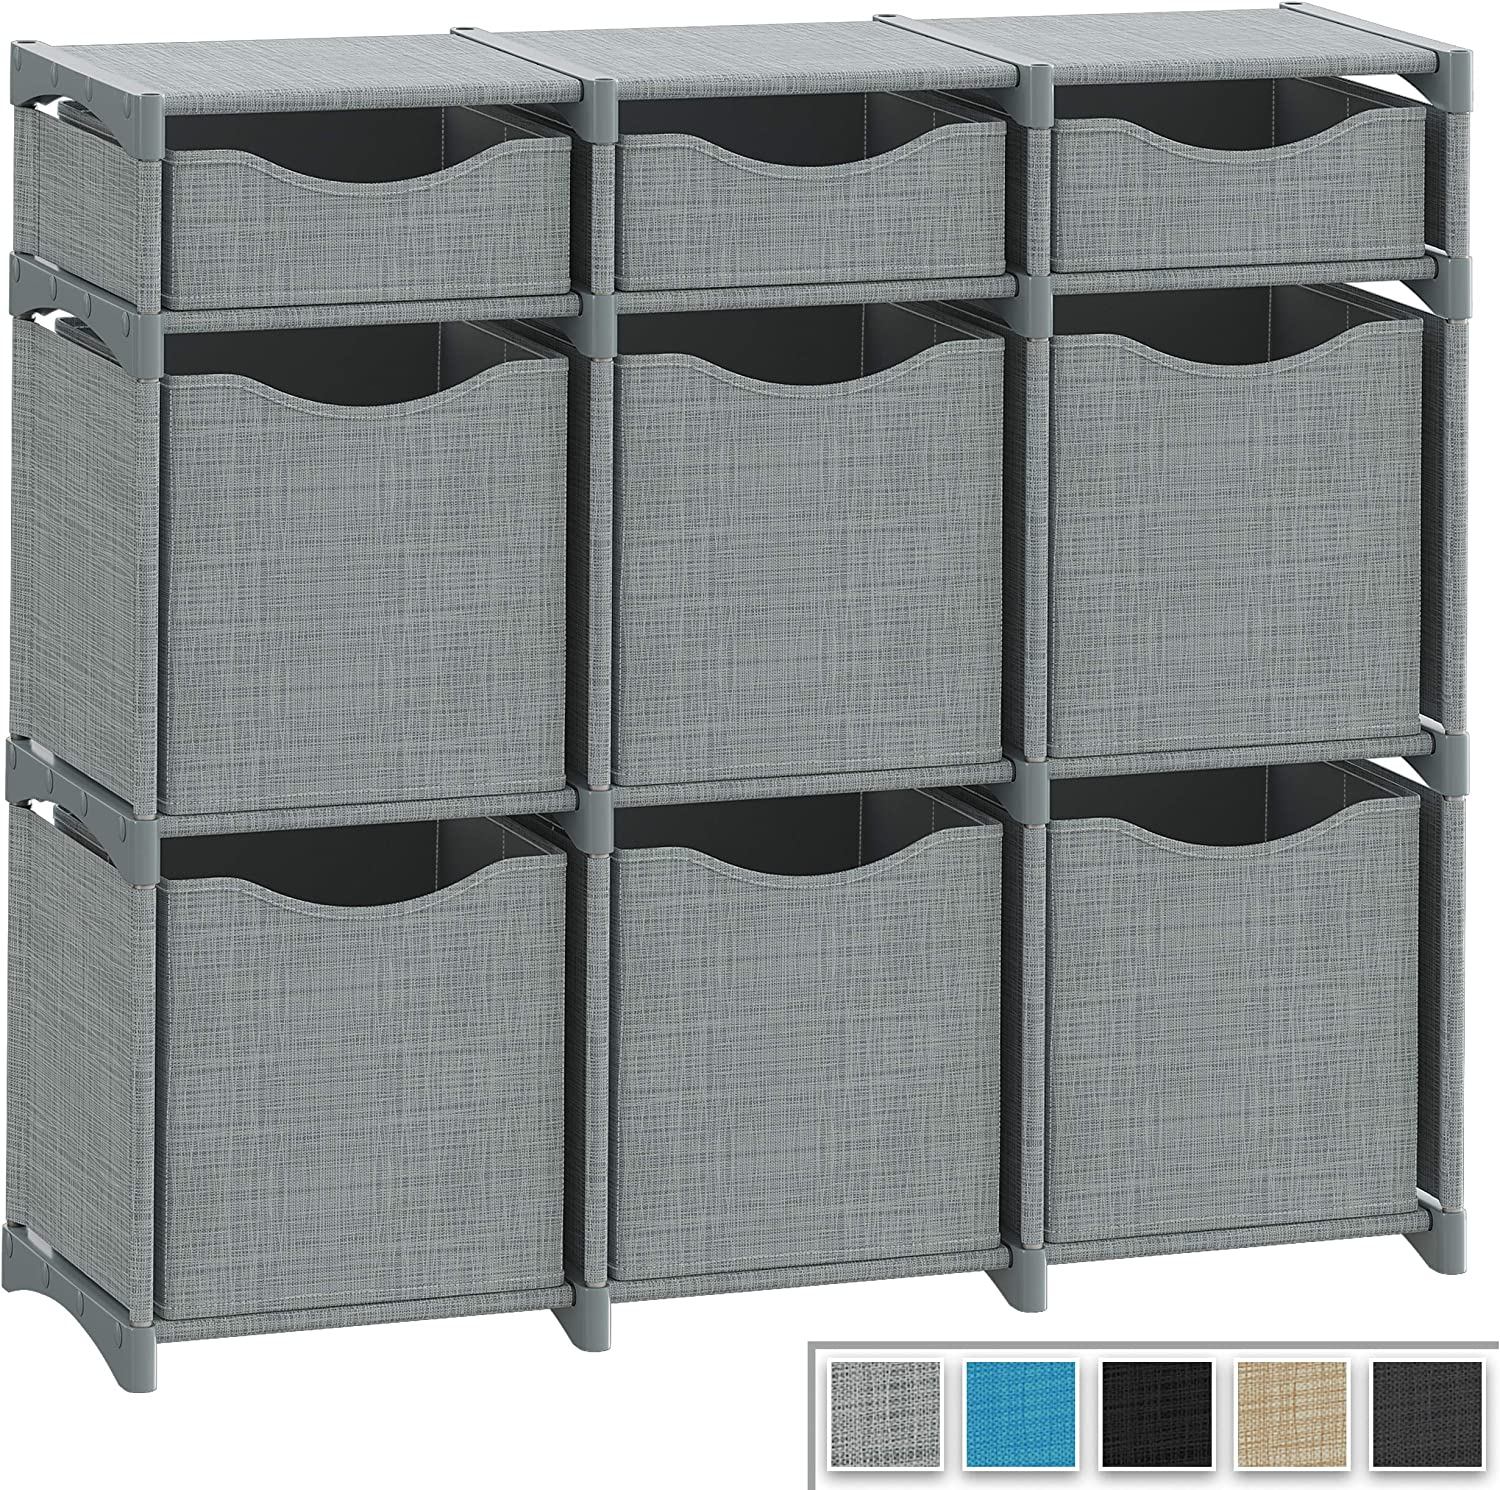 9 Cube Organizer | Set of Storage Cubes Included | DIY Closet Organizer Bins | Cube Organizers and Storage Shelves Unit | Closet Organizer for Bedroom, Playroom, Livingroom, Office, Dorm (Grey)